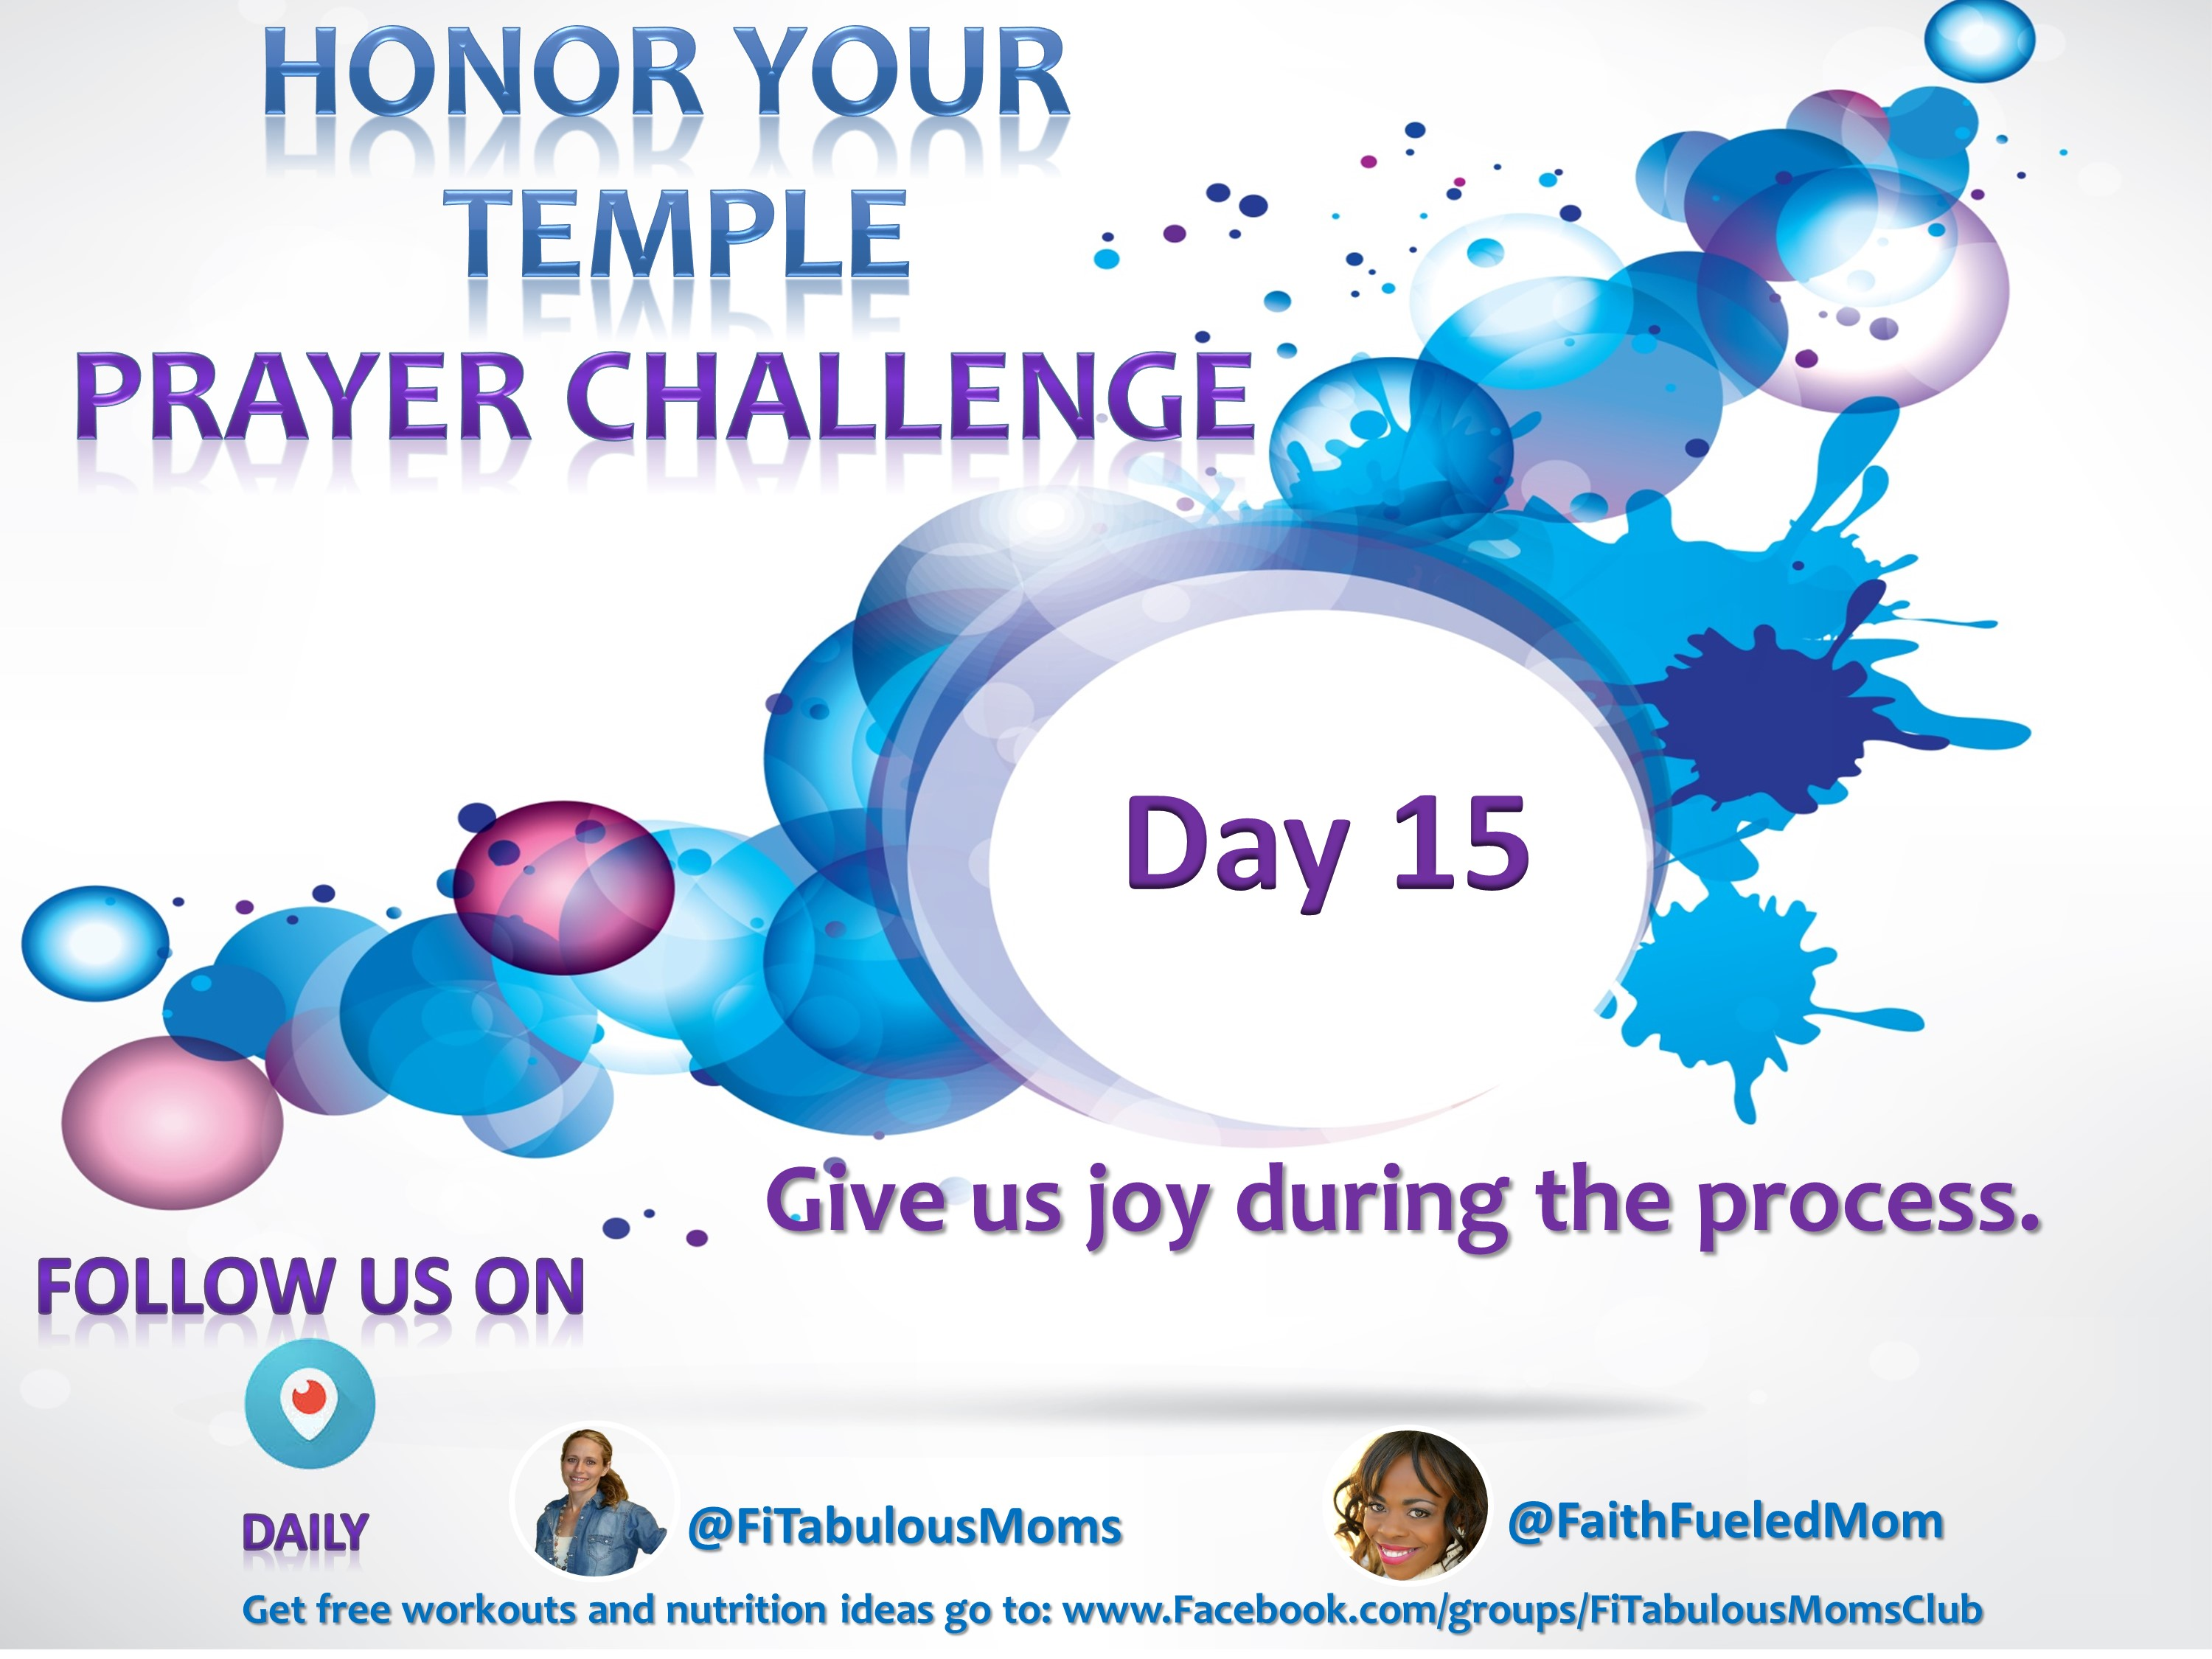 Day 15 Honor Your Temple Prayer Challenge